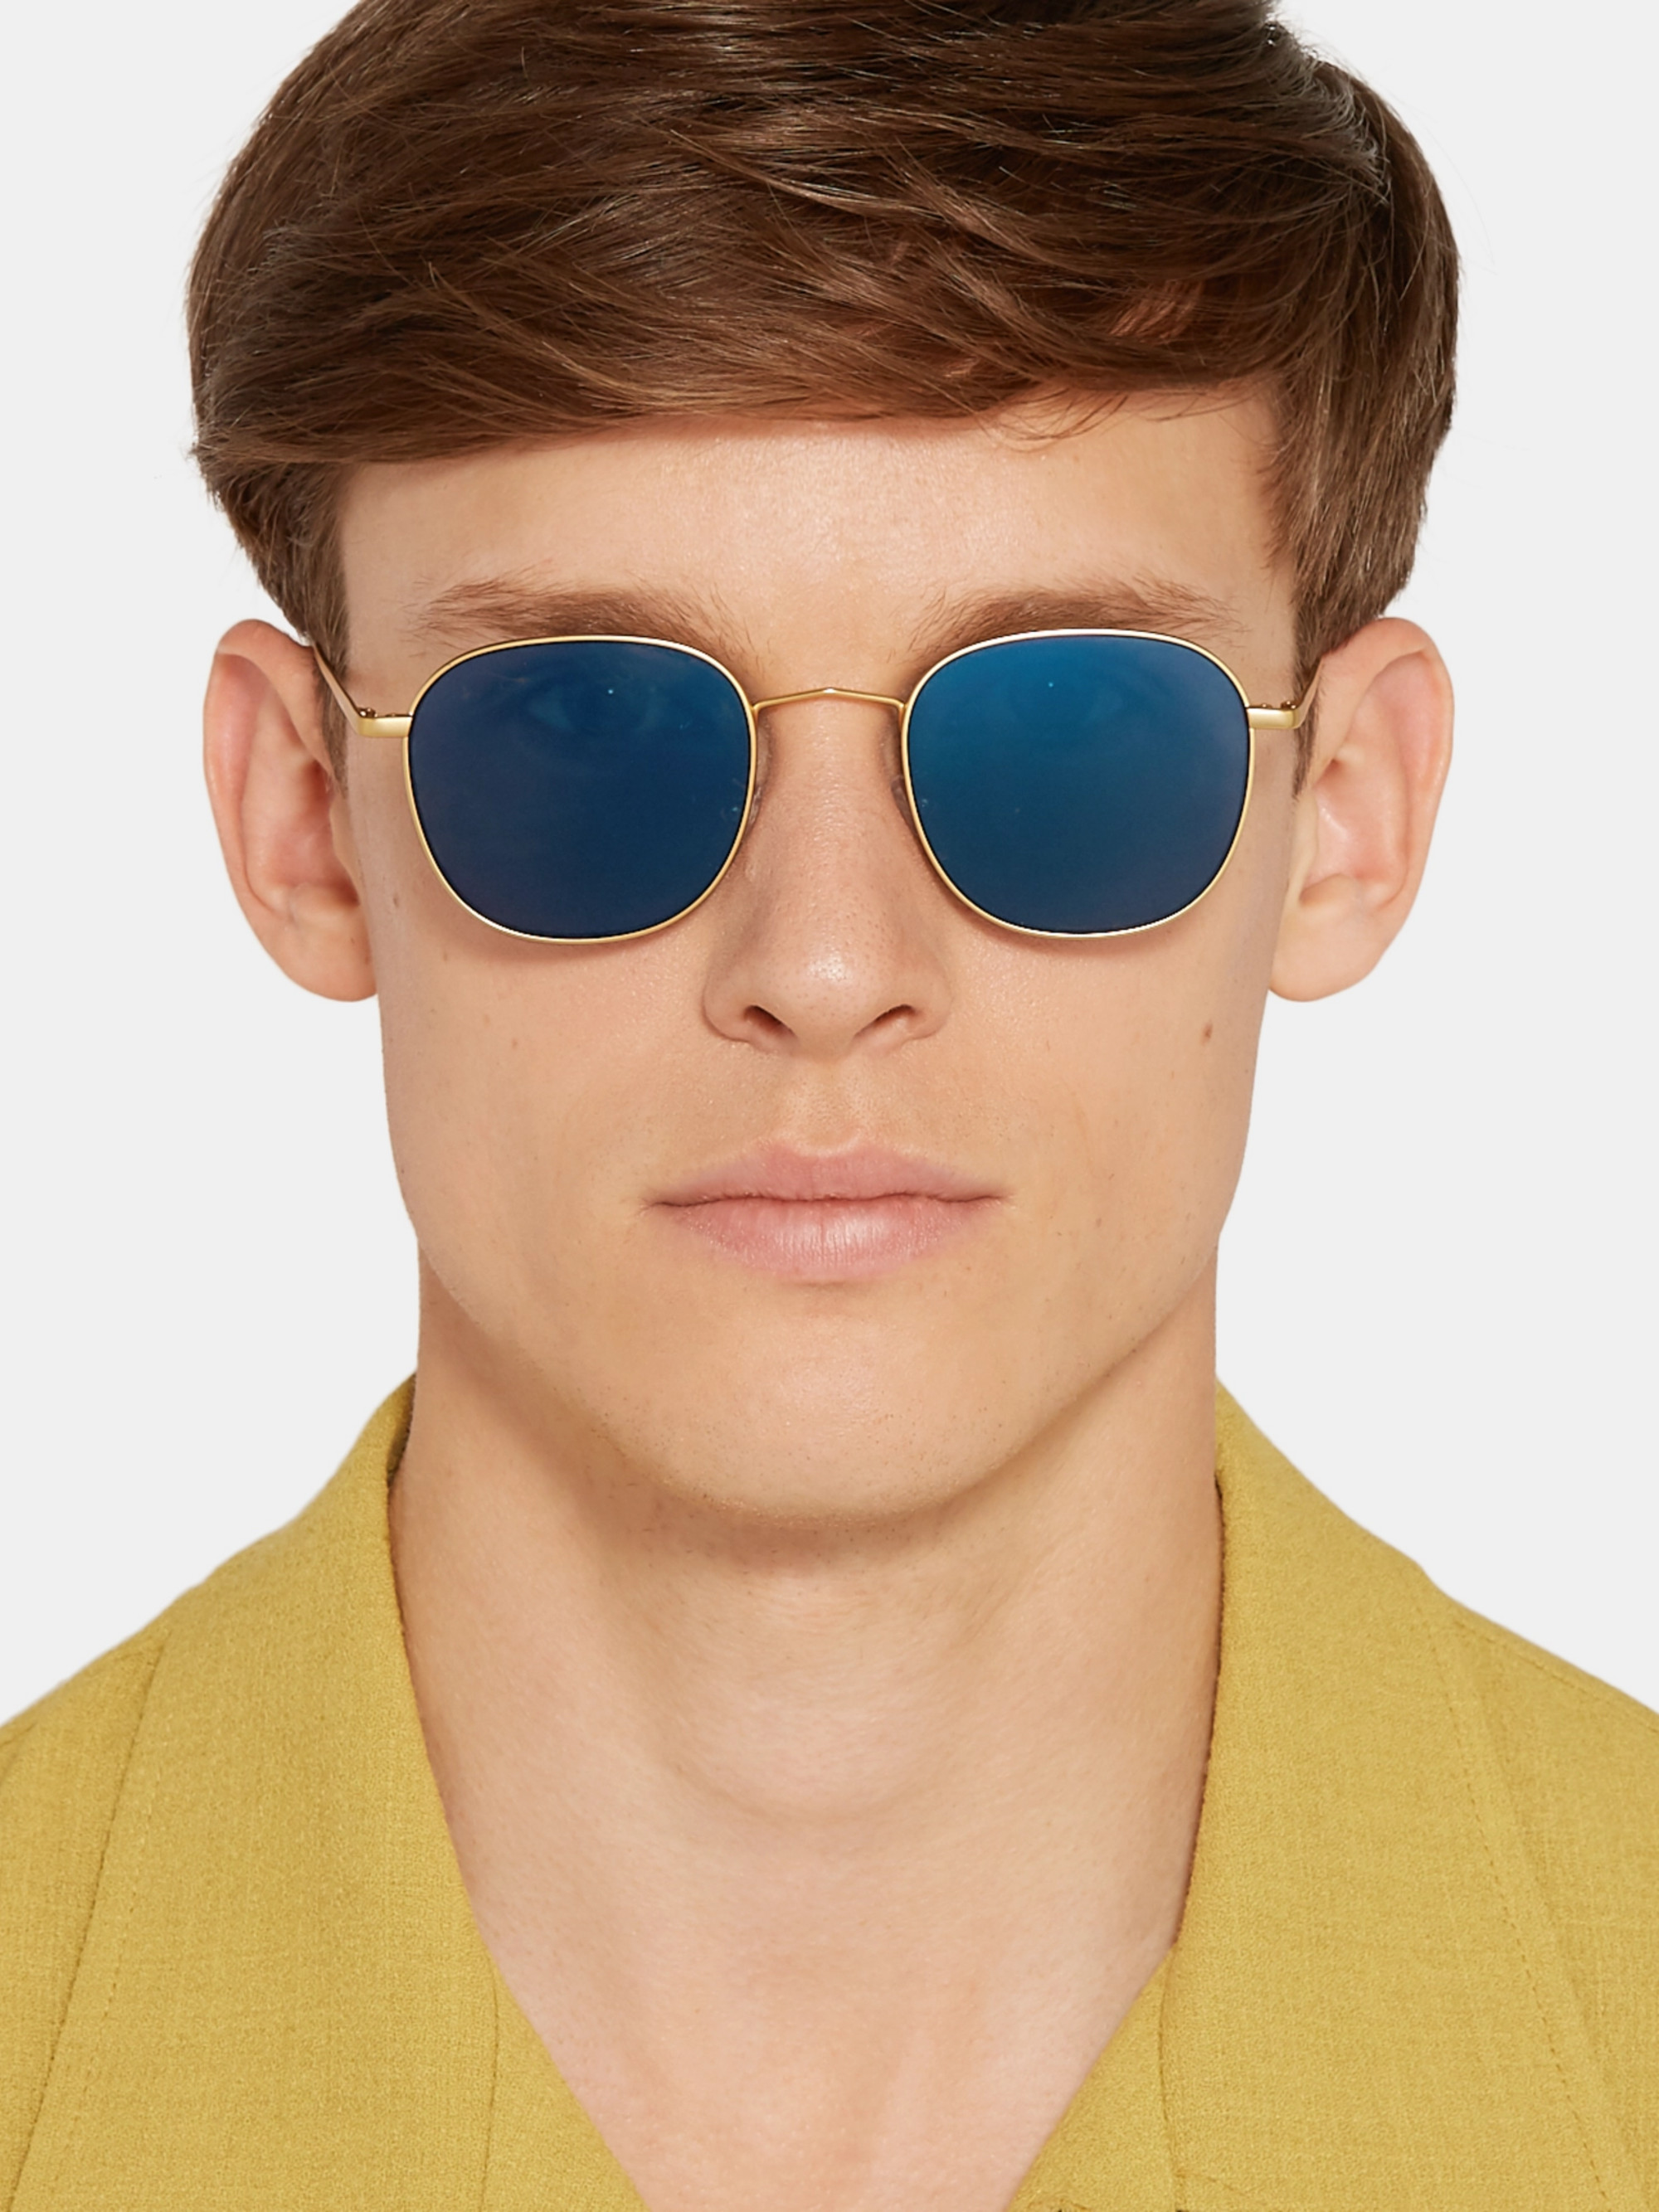 Paul Smith Round Gold-Tone Sunglasses